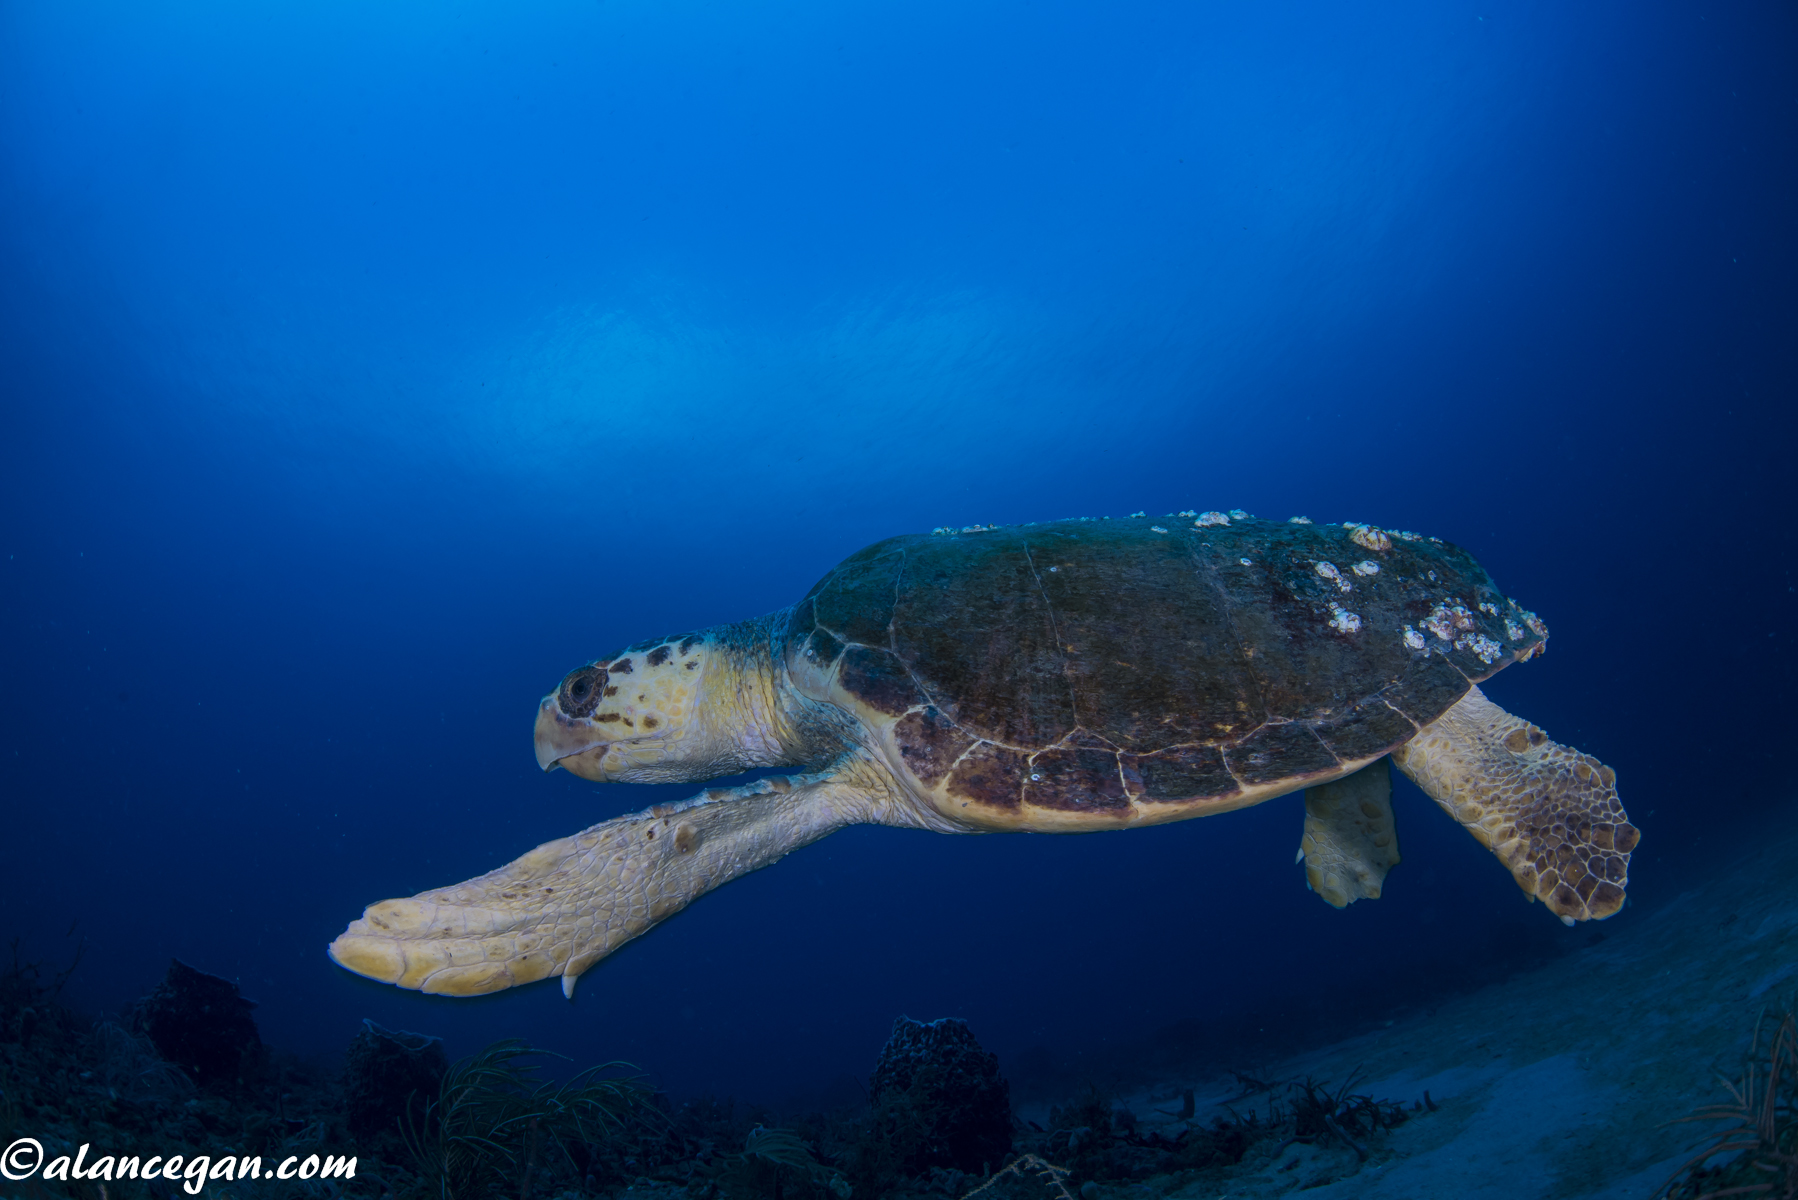 Underwater photograph of a Loggerhead Turtle on the wreck of the Castor taken by Alan C Egan